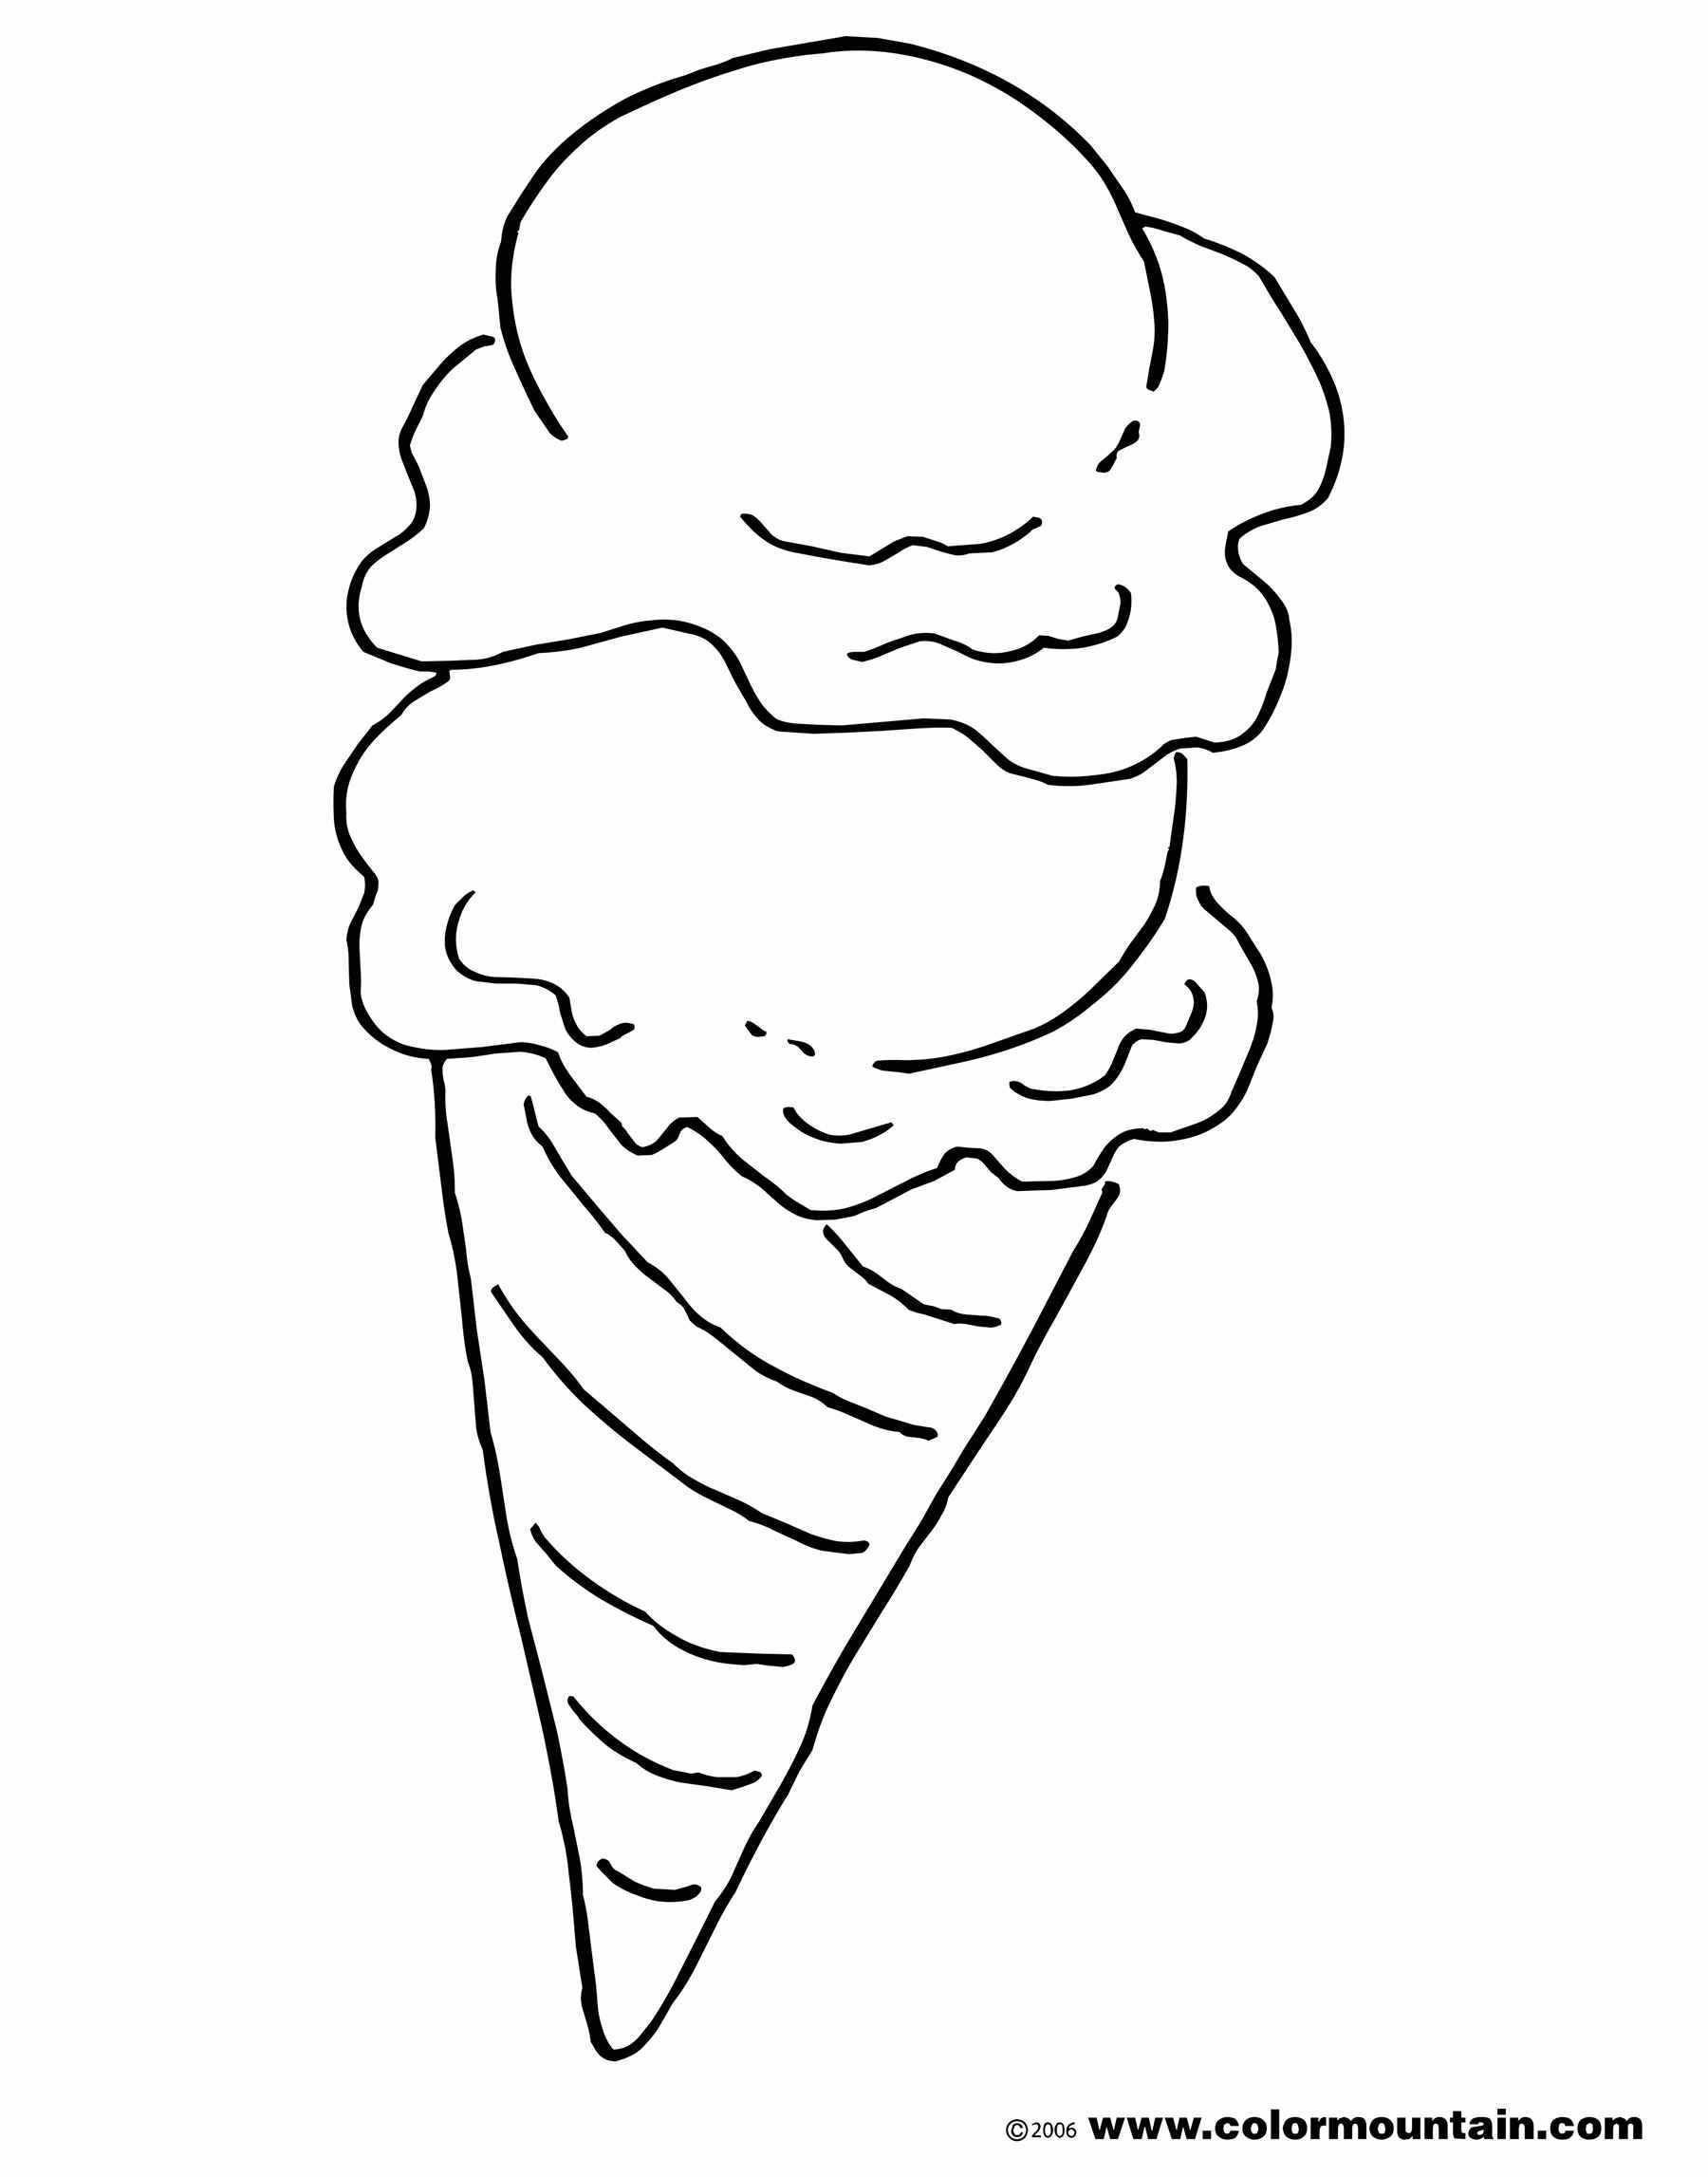 Ice Cream Cone Coloring Pages Affordable Way To Make The